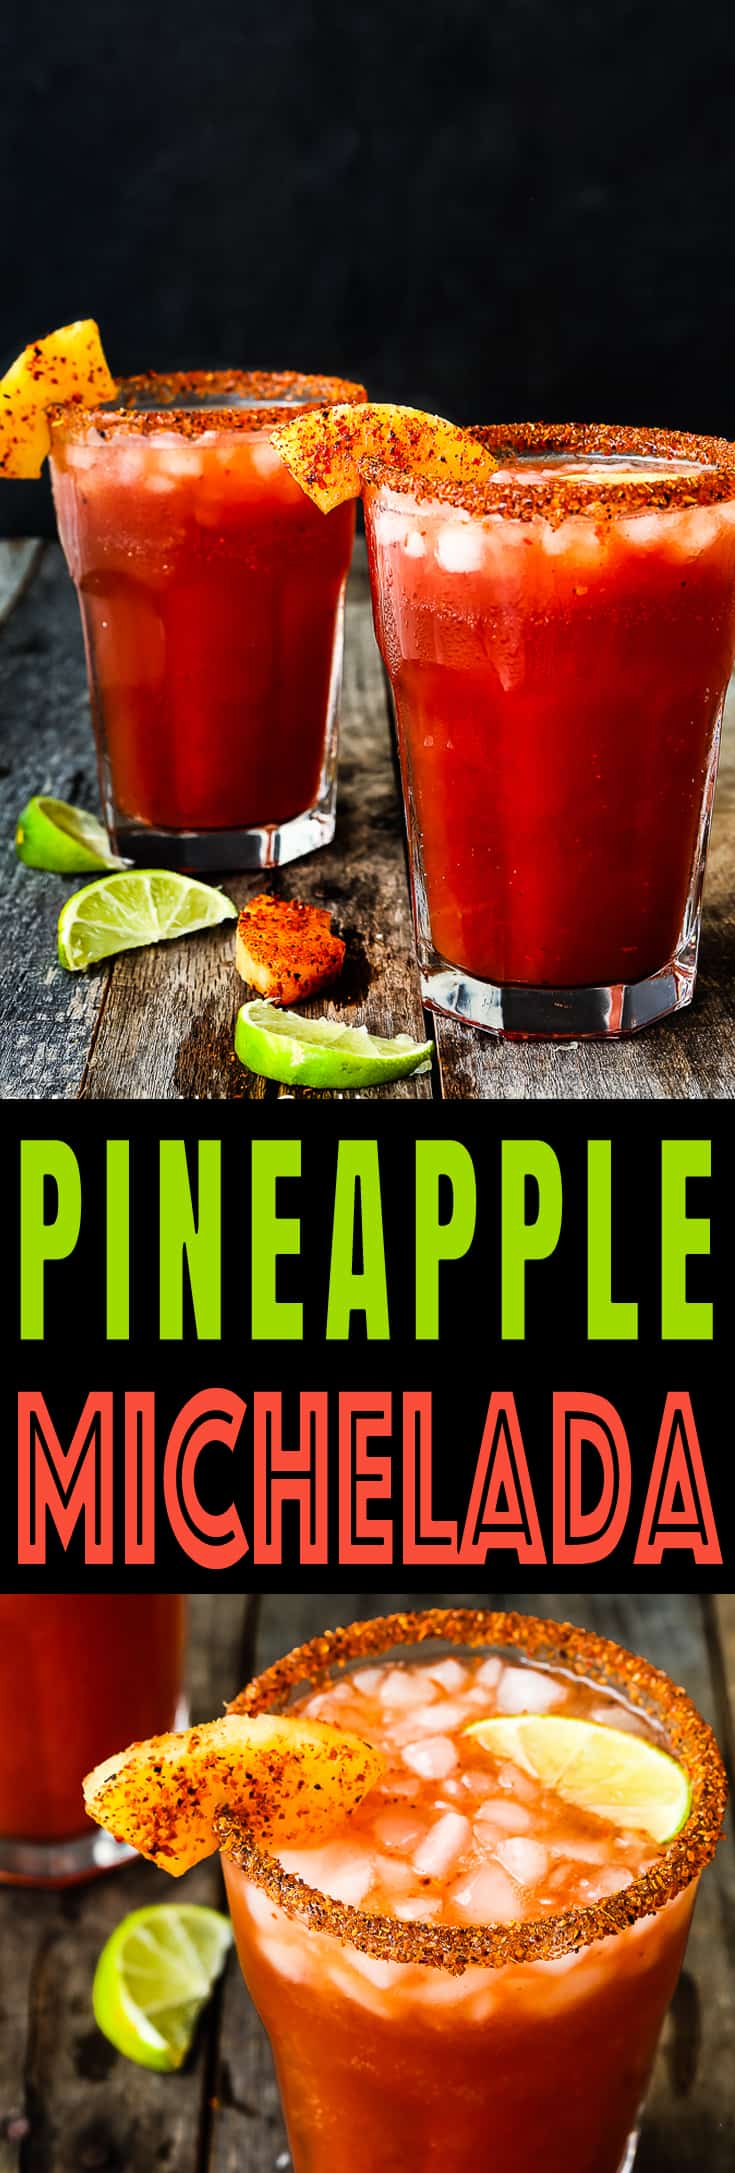 This Pineapple Michelada is the perfect beer cocktail for summer!! It has it all going on: savory, spicy, sweet and tart. So good, and so easy! https://mommyshomecooking.com